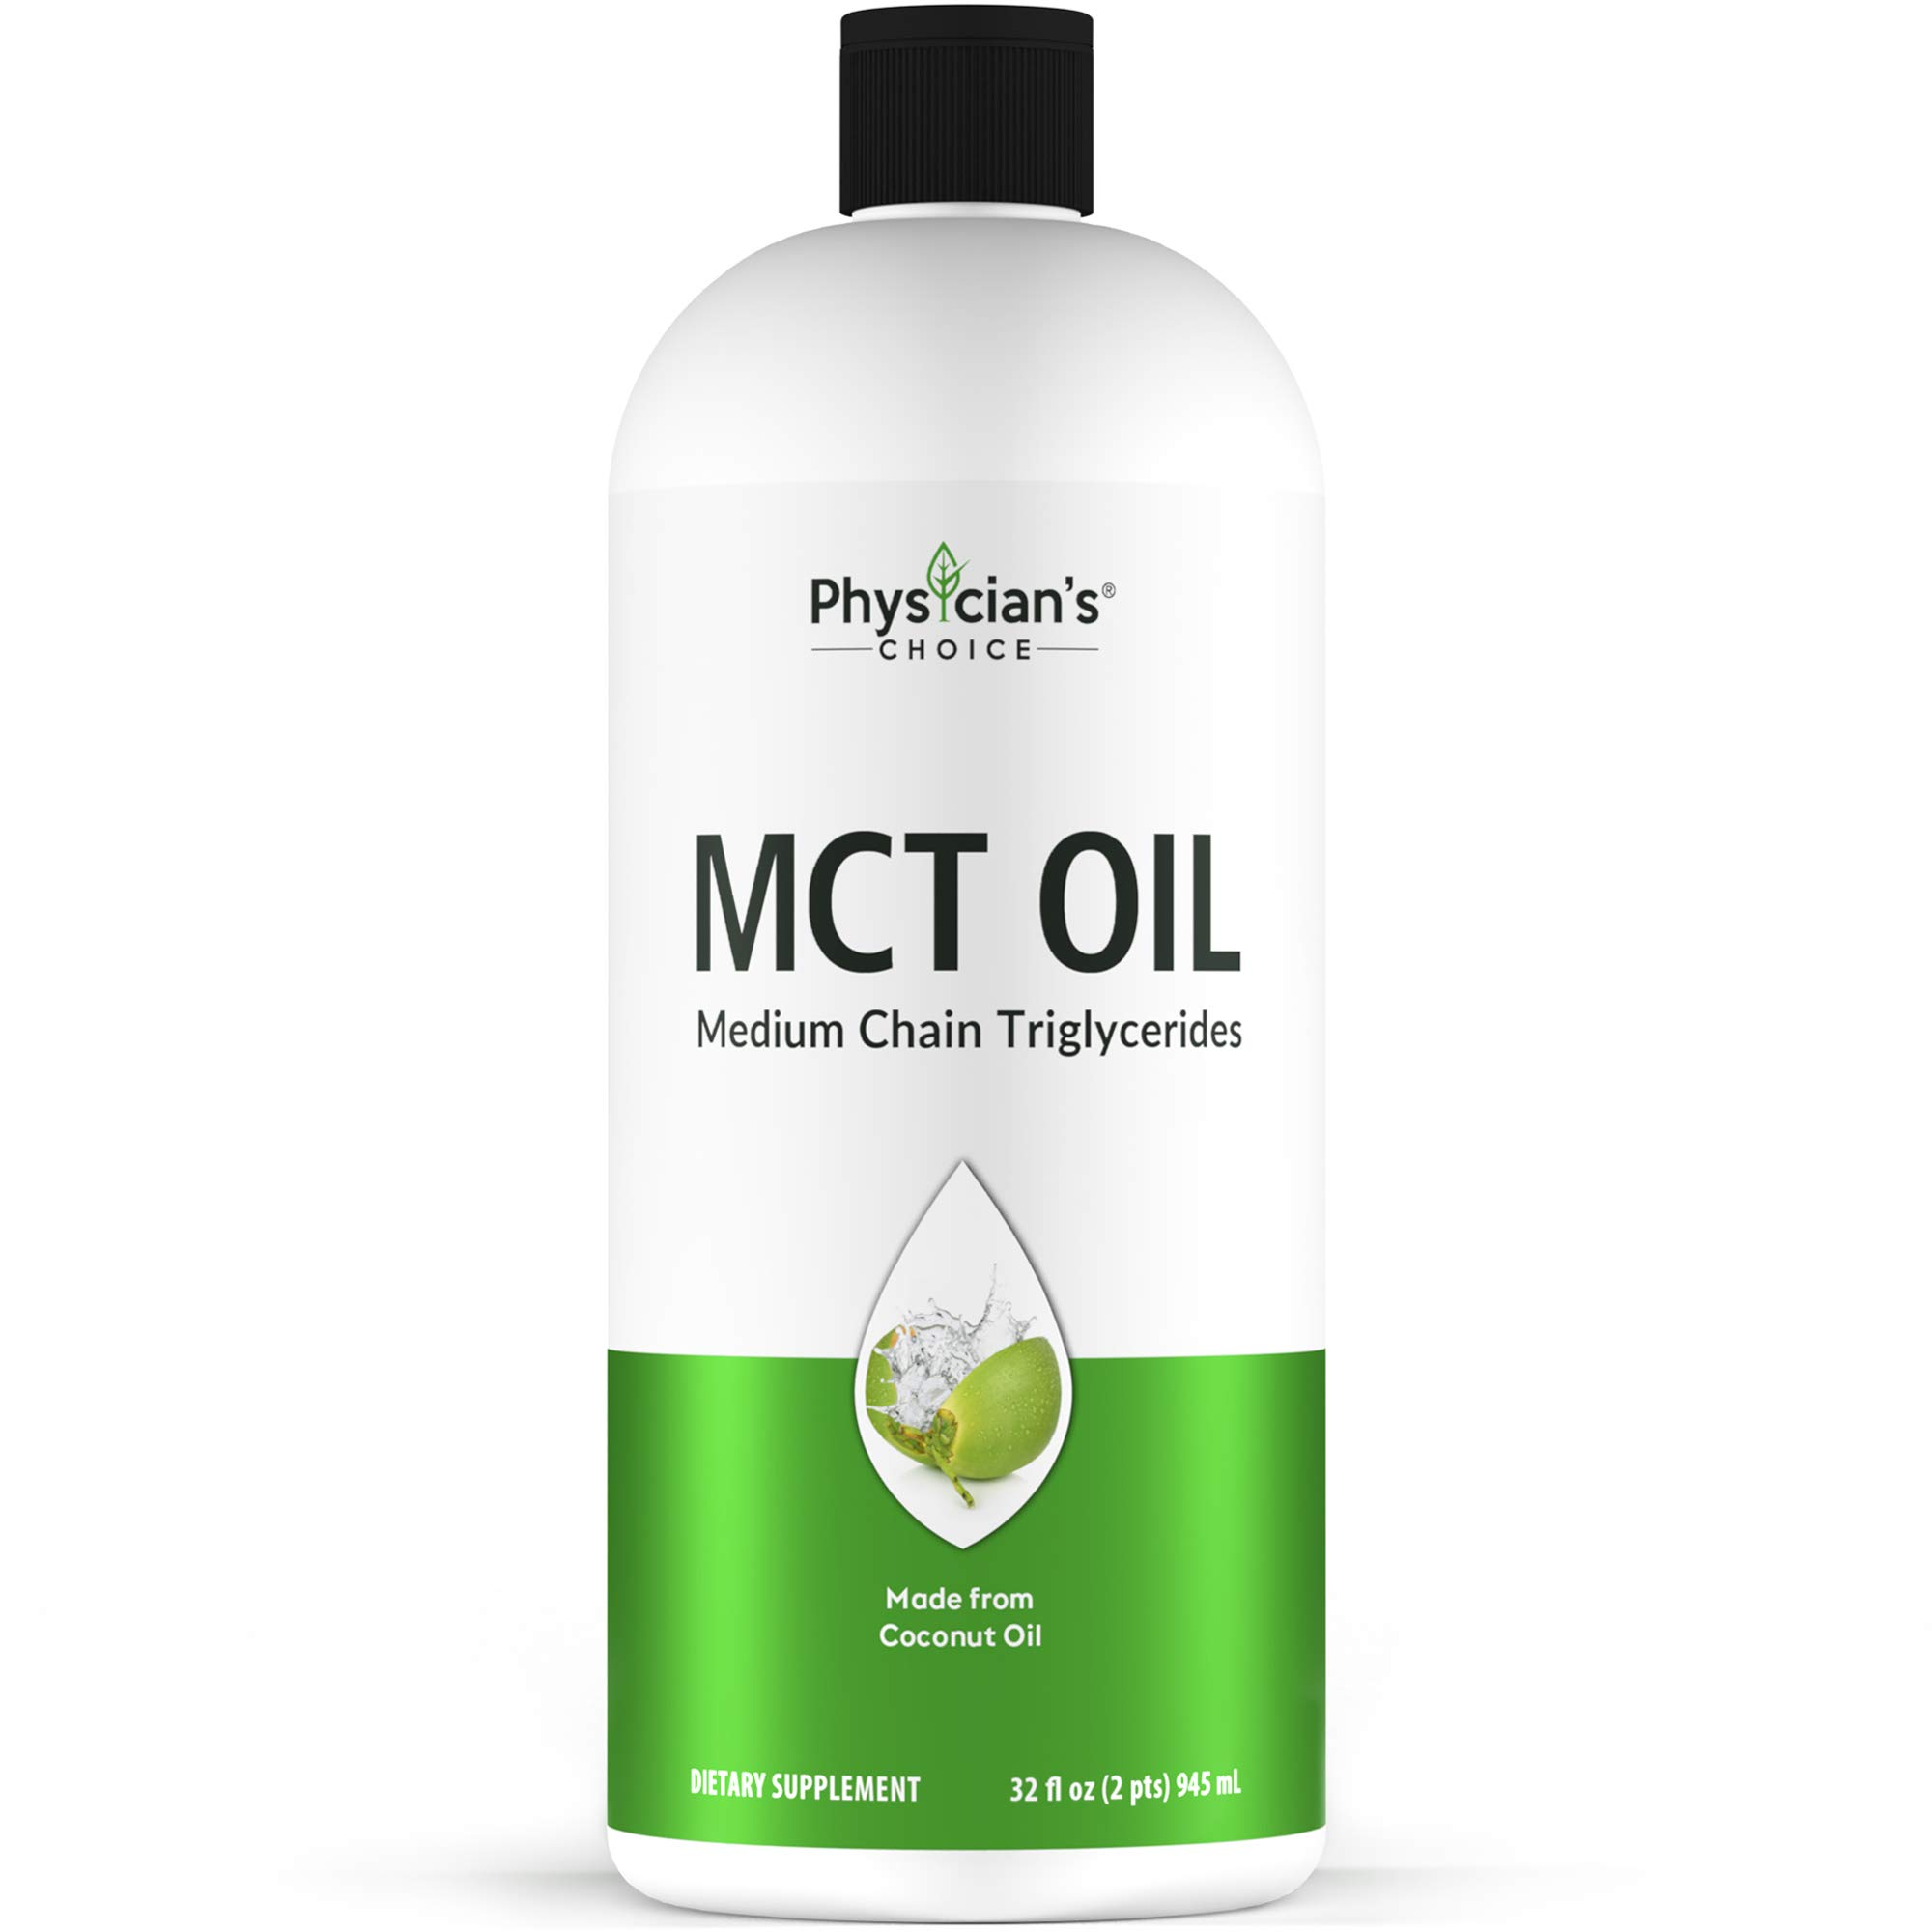 Dr Approved MCT Oil, 100% Pure, 2 Months Supply 32 OZ, Keto Friendly, Made from Coconut Oil, Brain and Body Fuel, Vegan, Gluten-Free, Non-GMO, Unflavored Liquid